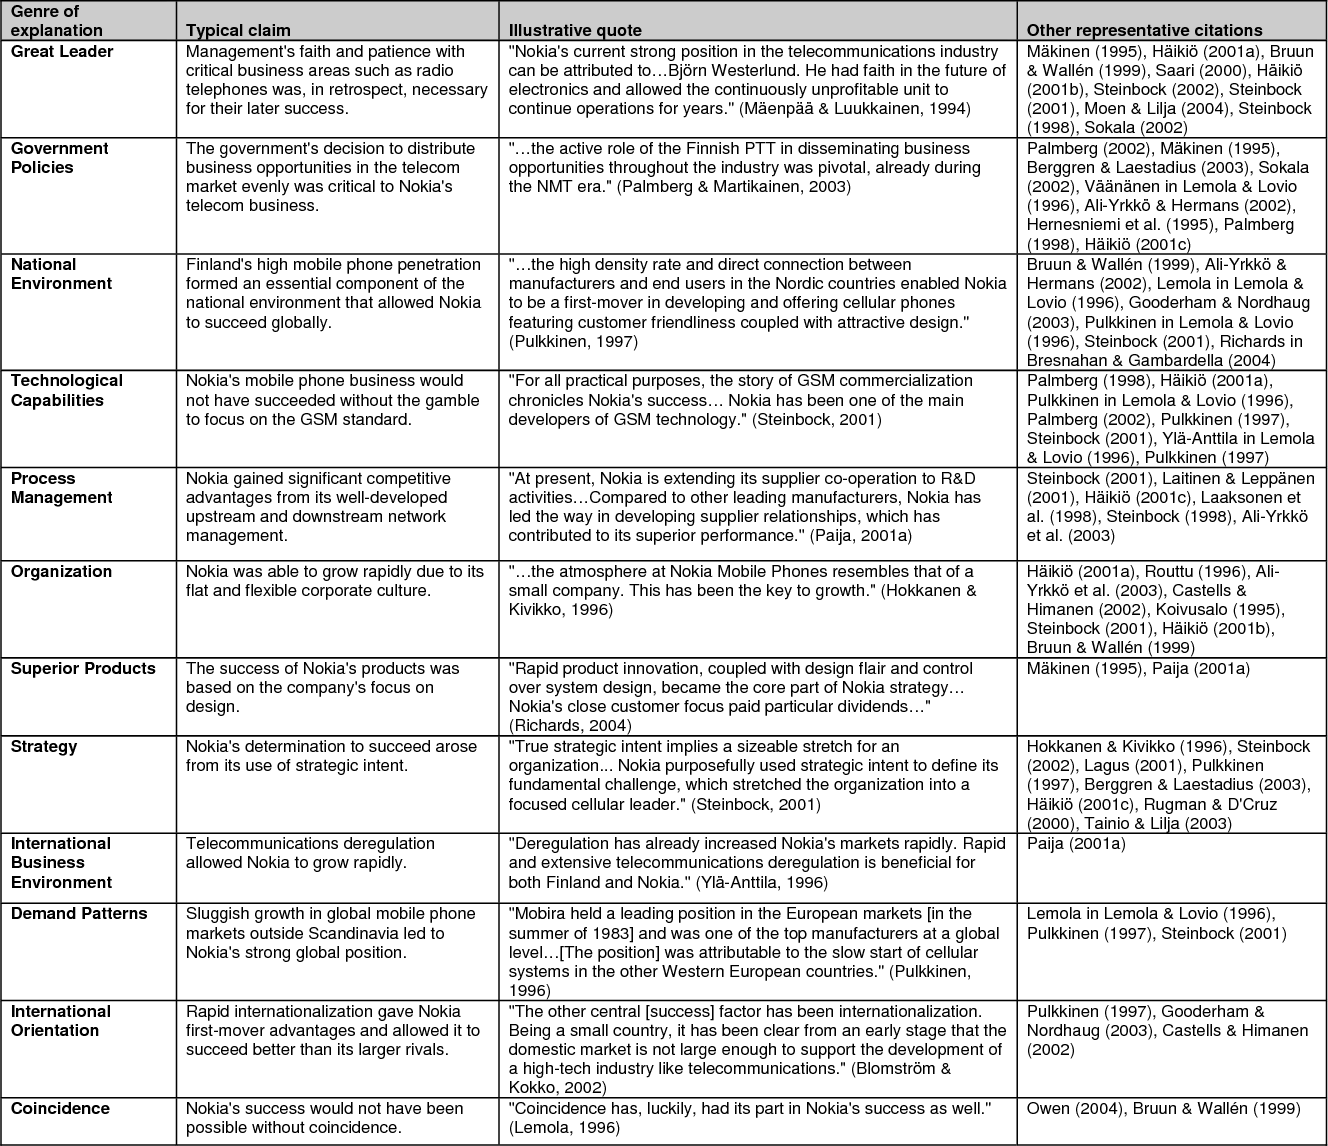 Table 3 From The Anatomy And Causal Structure Of A Corporate Myth